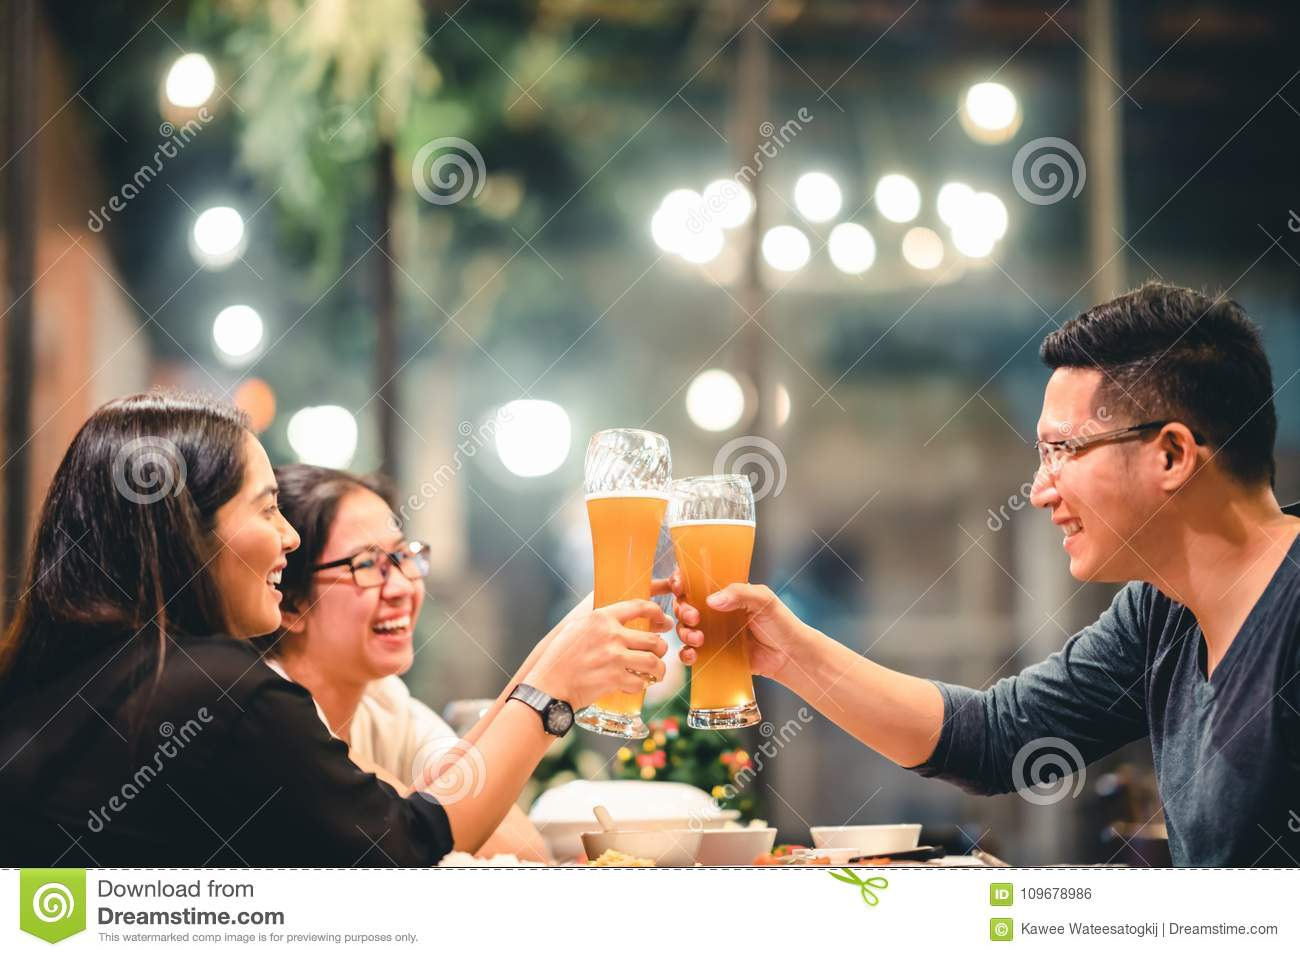 Asian friends or coworkers cheering with beer, celebrating together at restaurant or night club. Young people toasting at party.